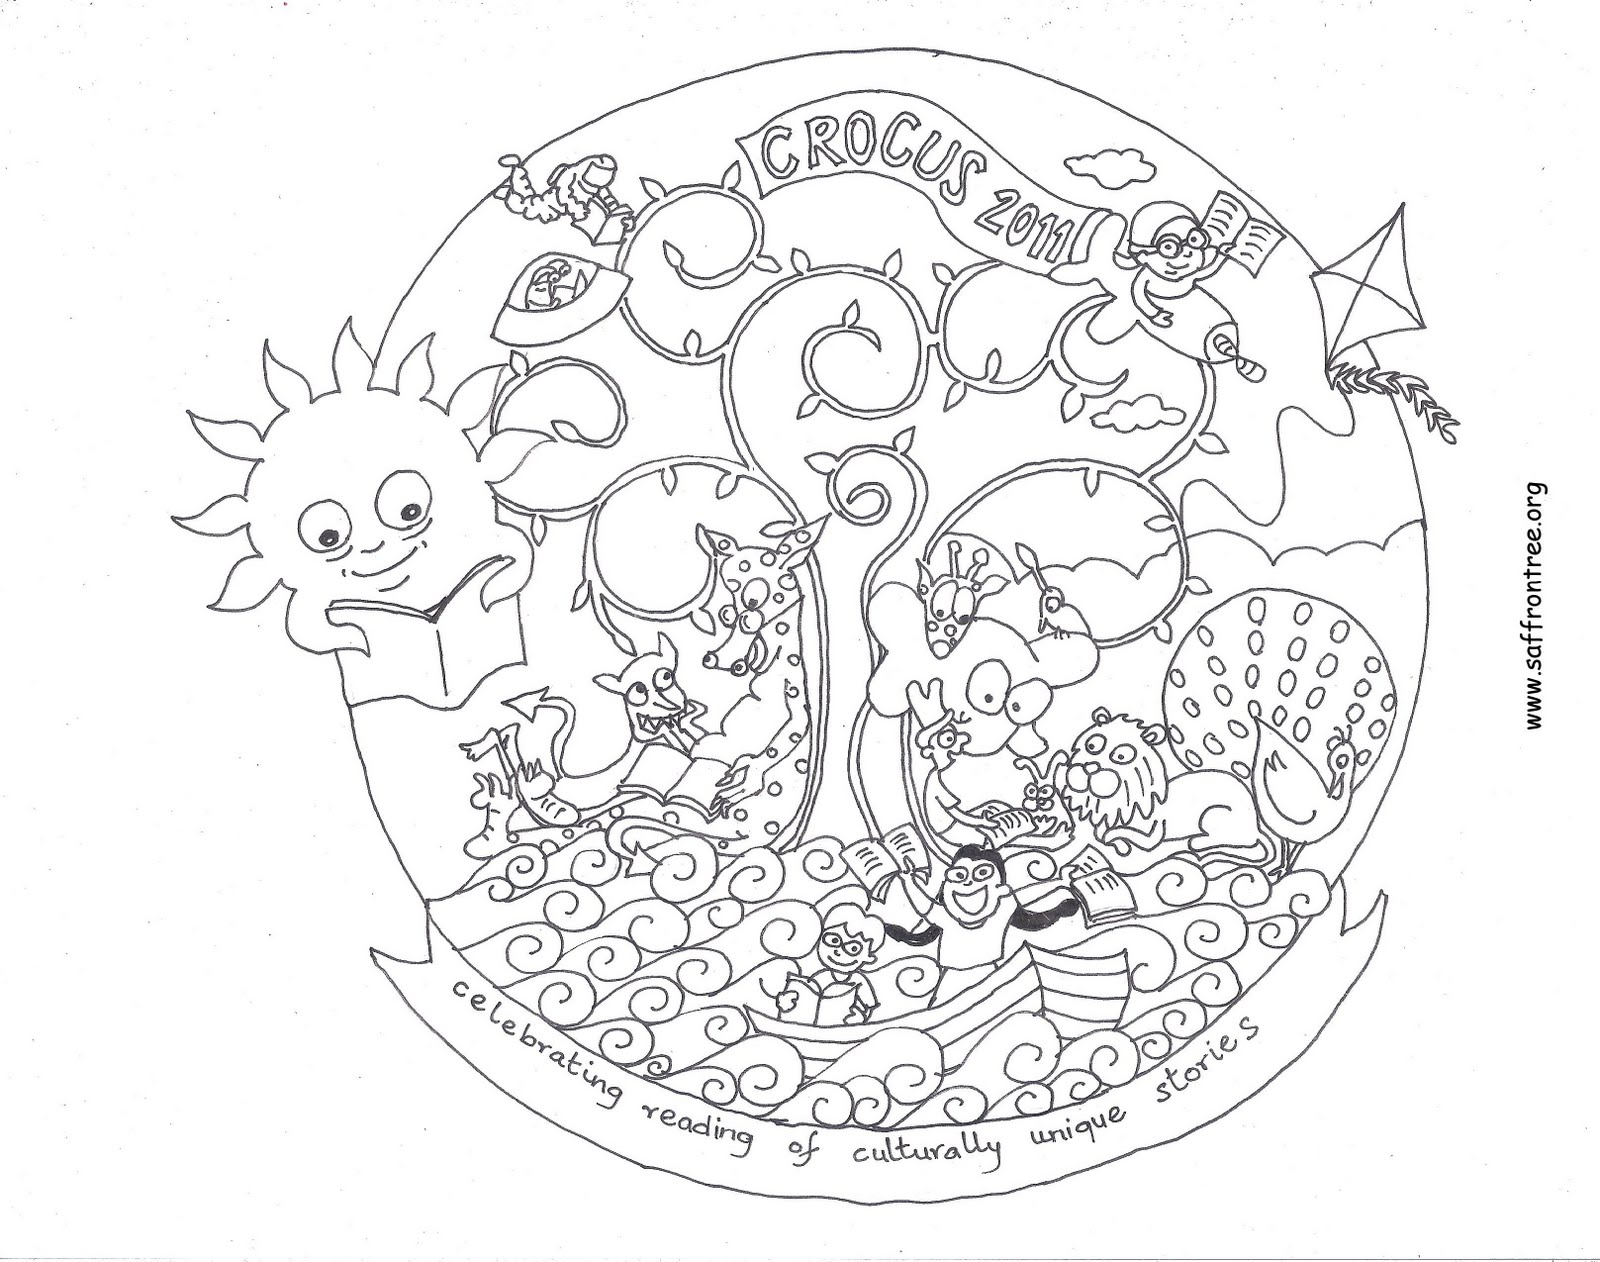 Box Car Coloring Pages : Free boxcar children coloring pages